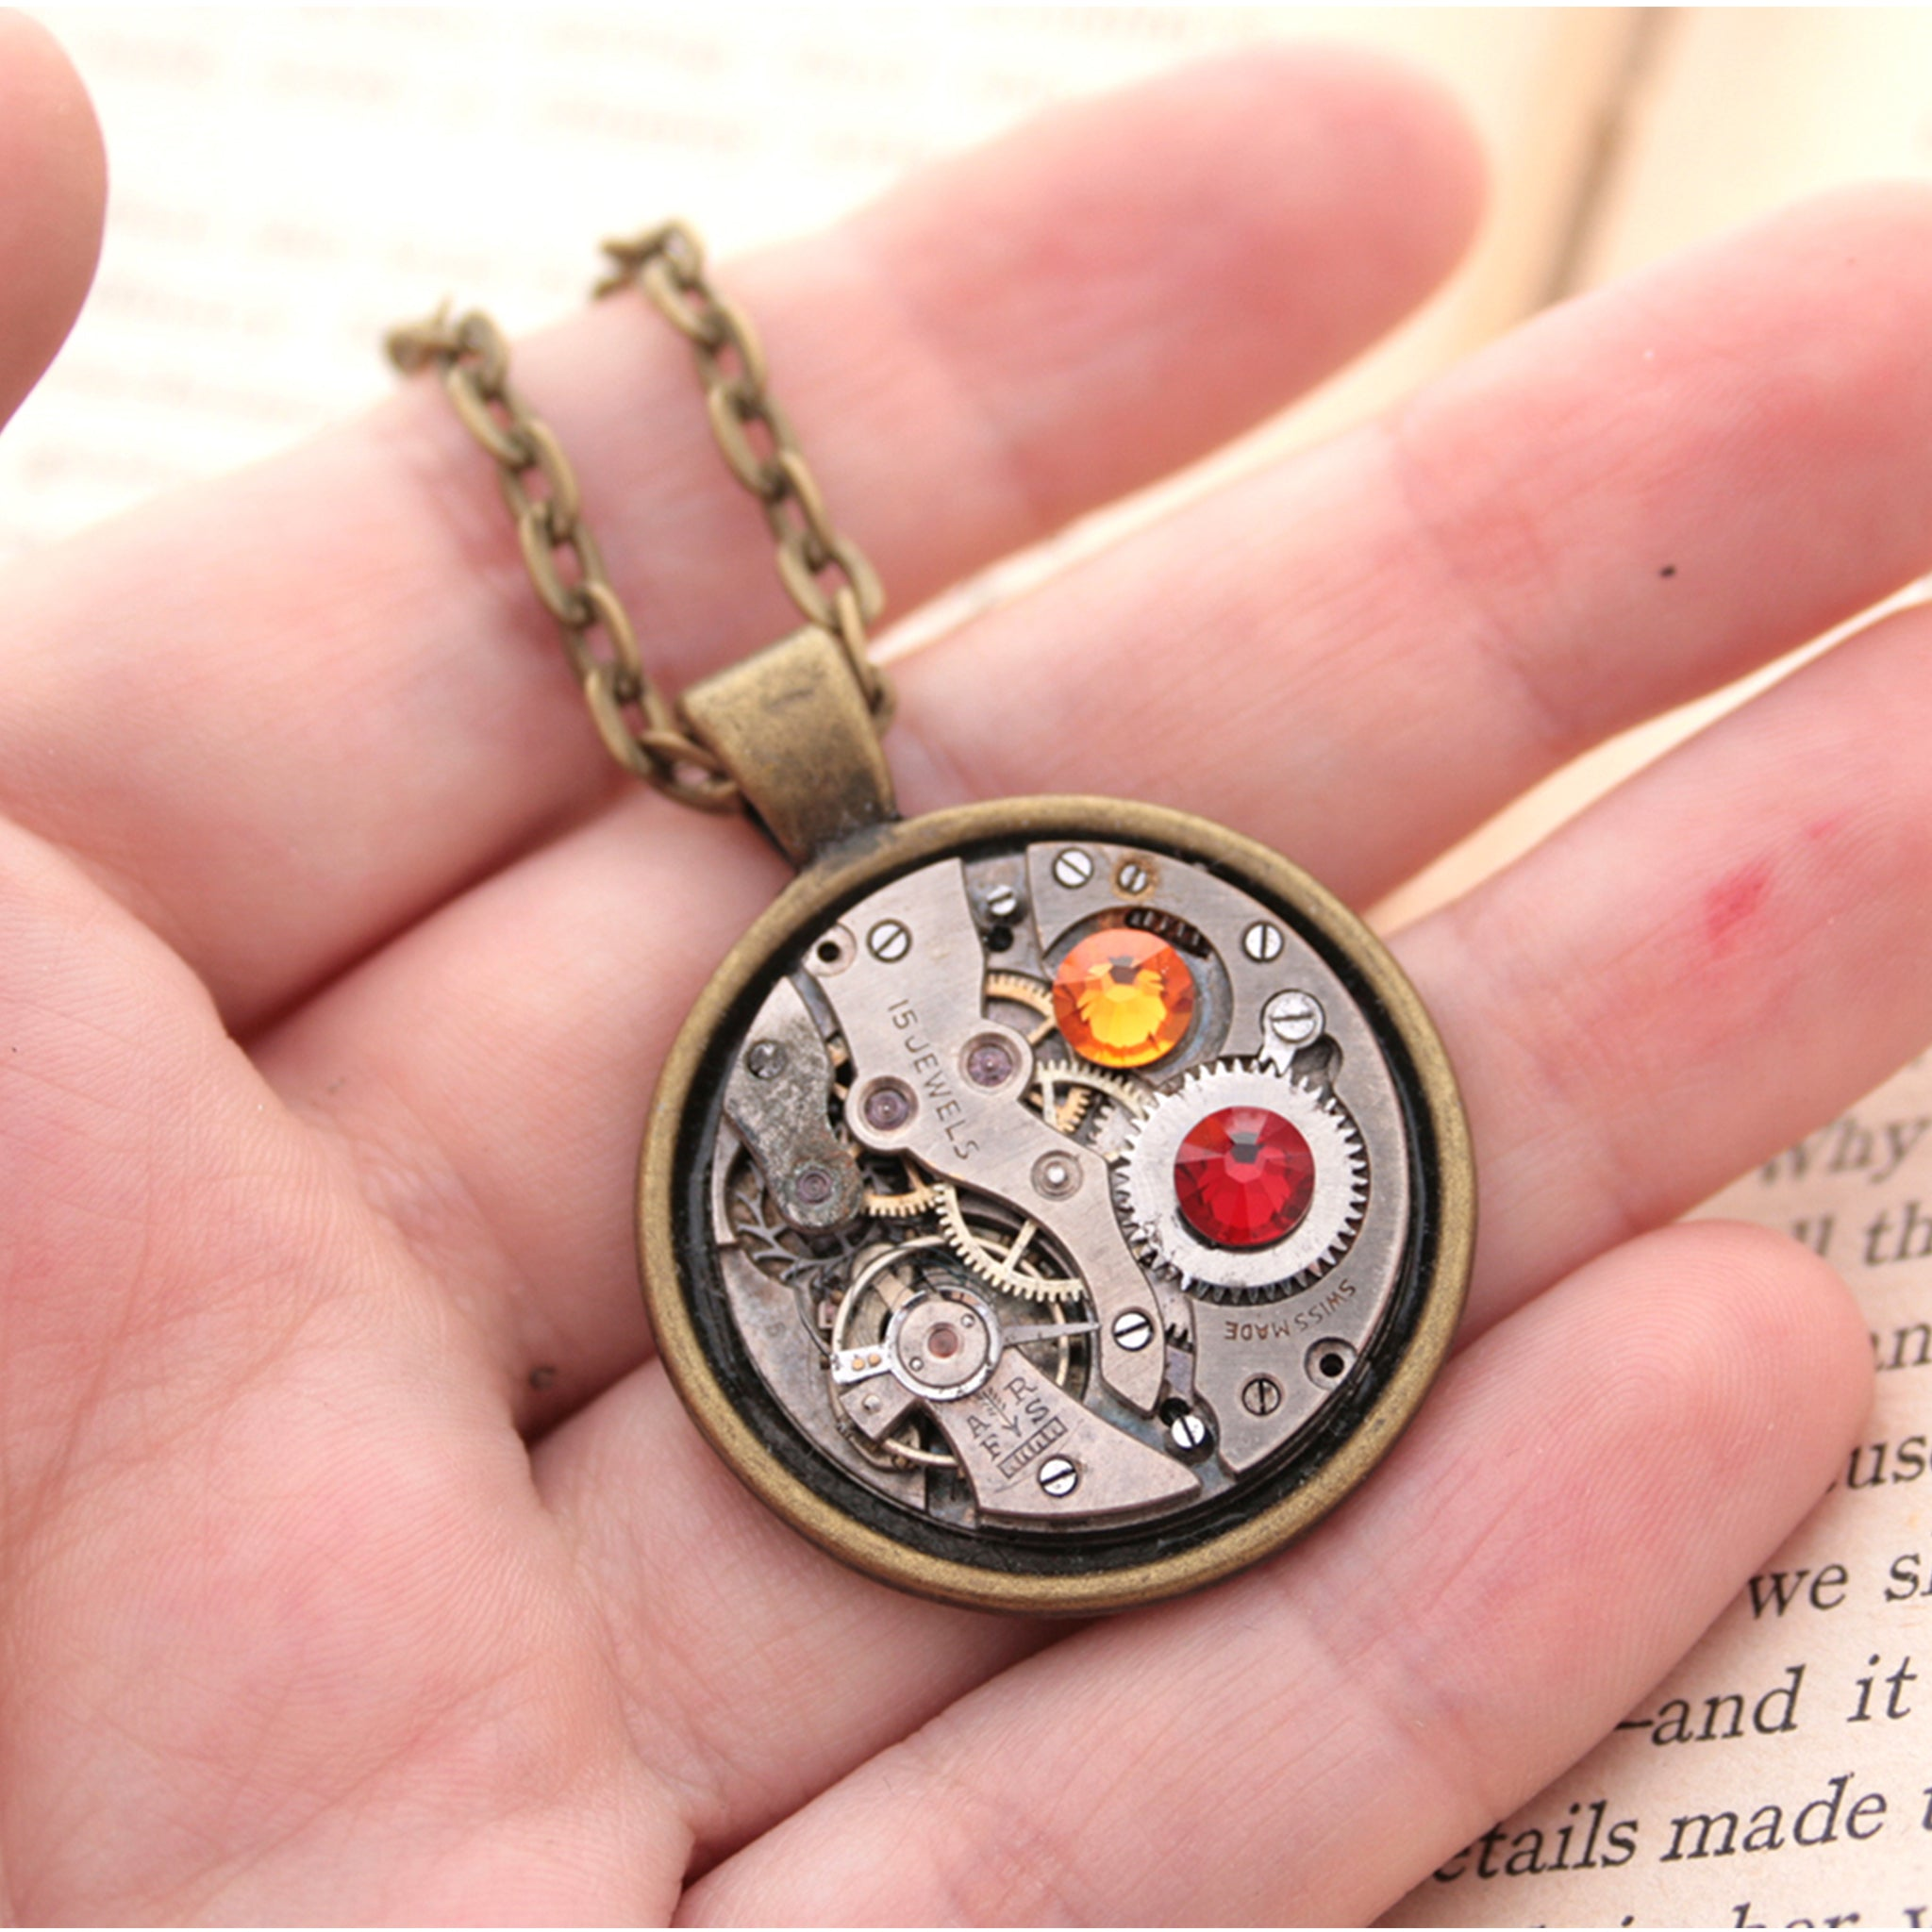 Dark academia necklace made of watch mechanism and Swarovski crystals lying on hand